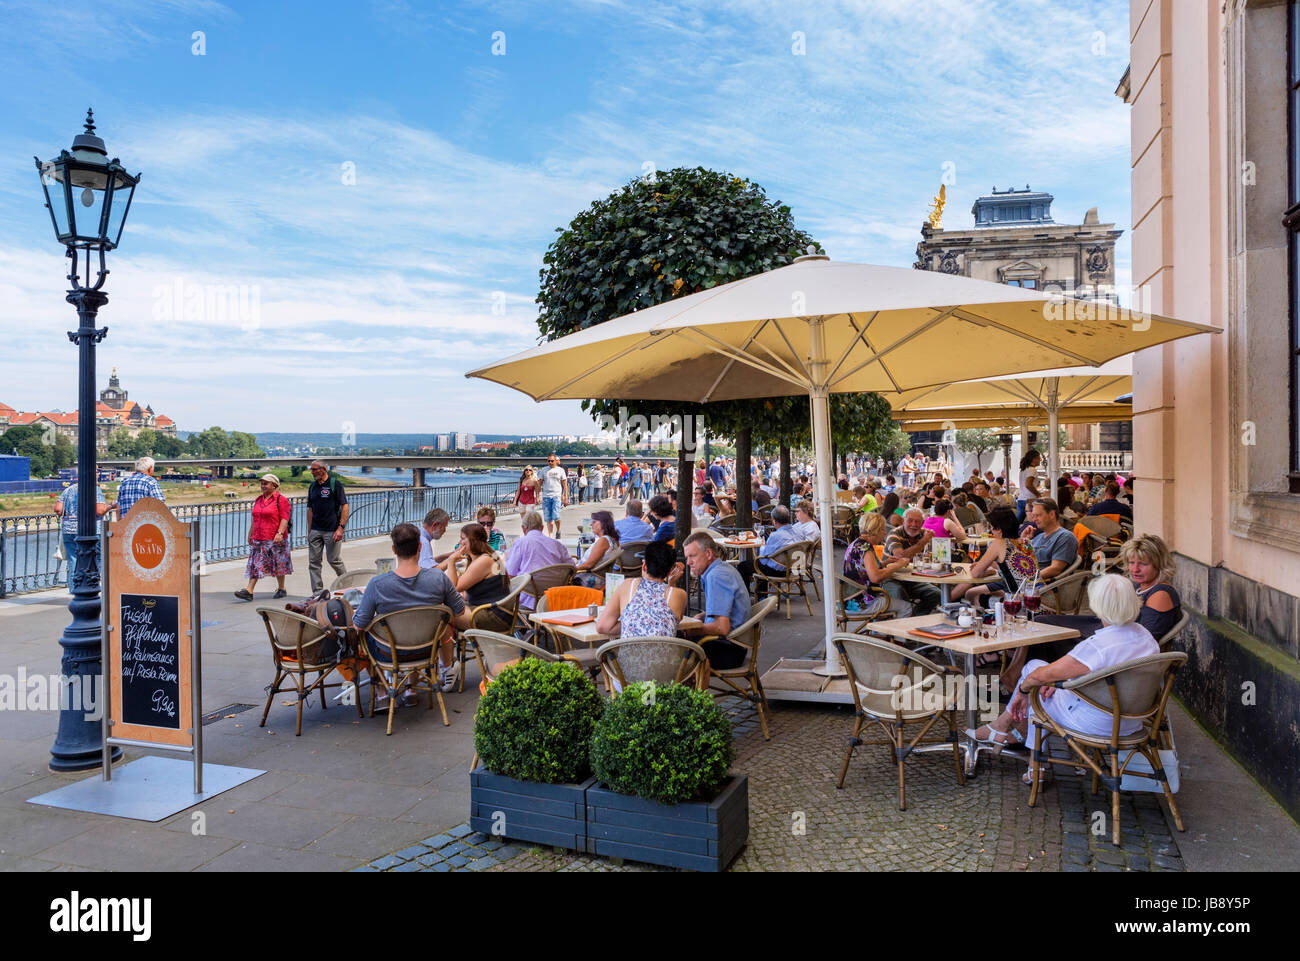 Terrasse Café Stock Photos Terrasse Café Stock Images Alamy